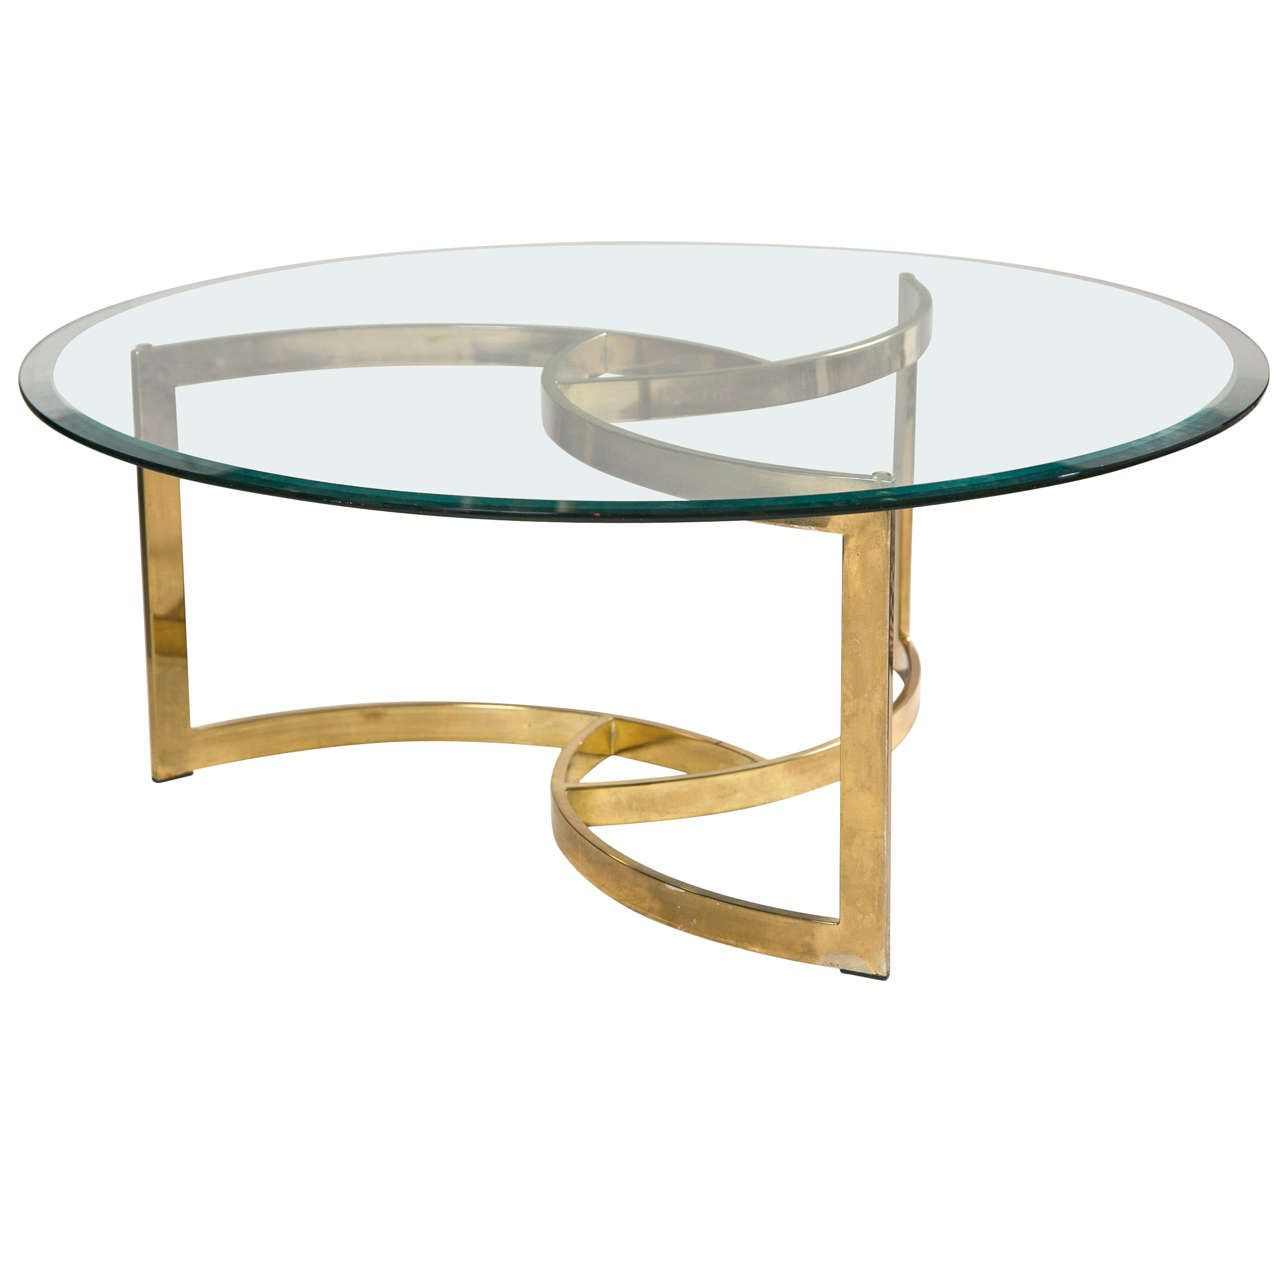 Round Glass Top Table With Golden Base Made From Metal With